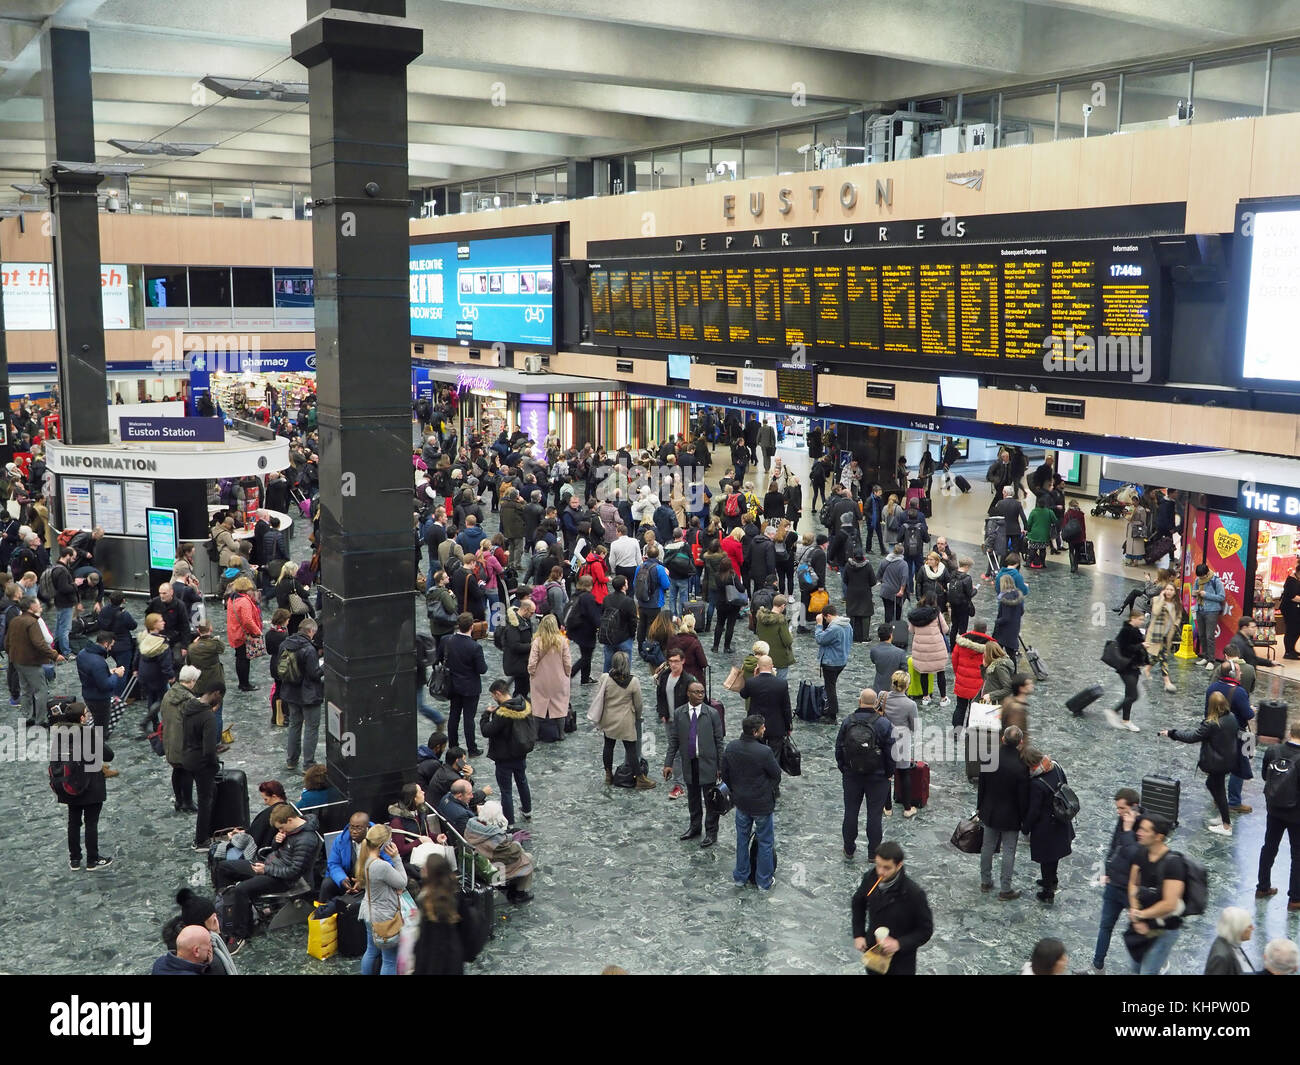 View of the concourse at Euston Station in London - Stock Image